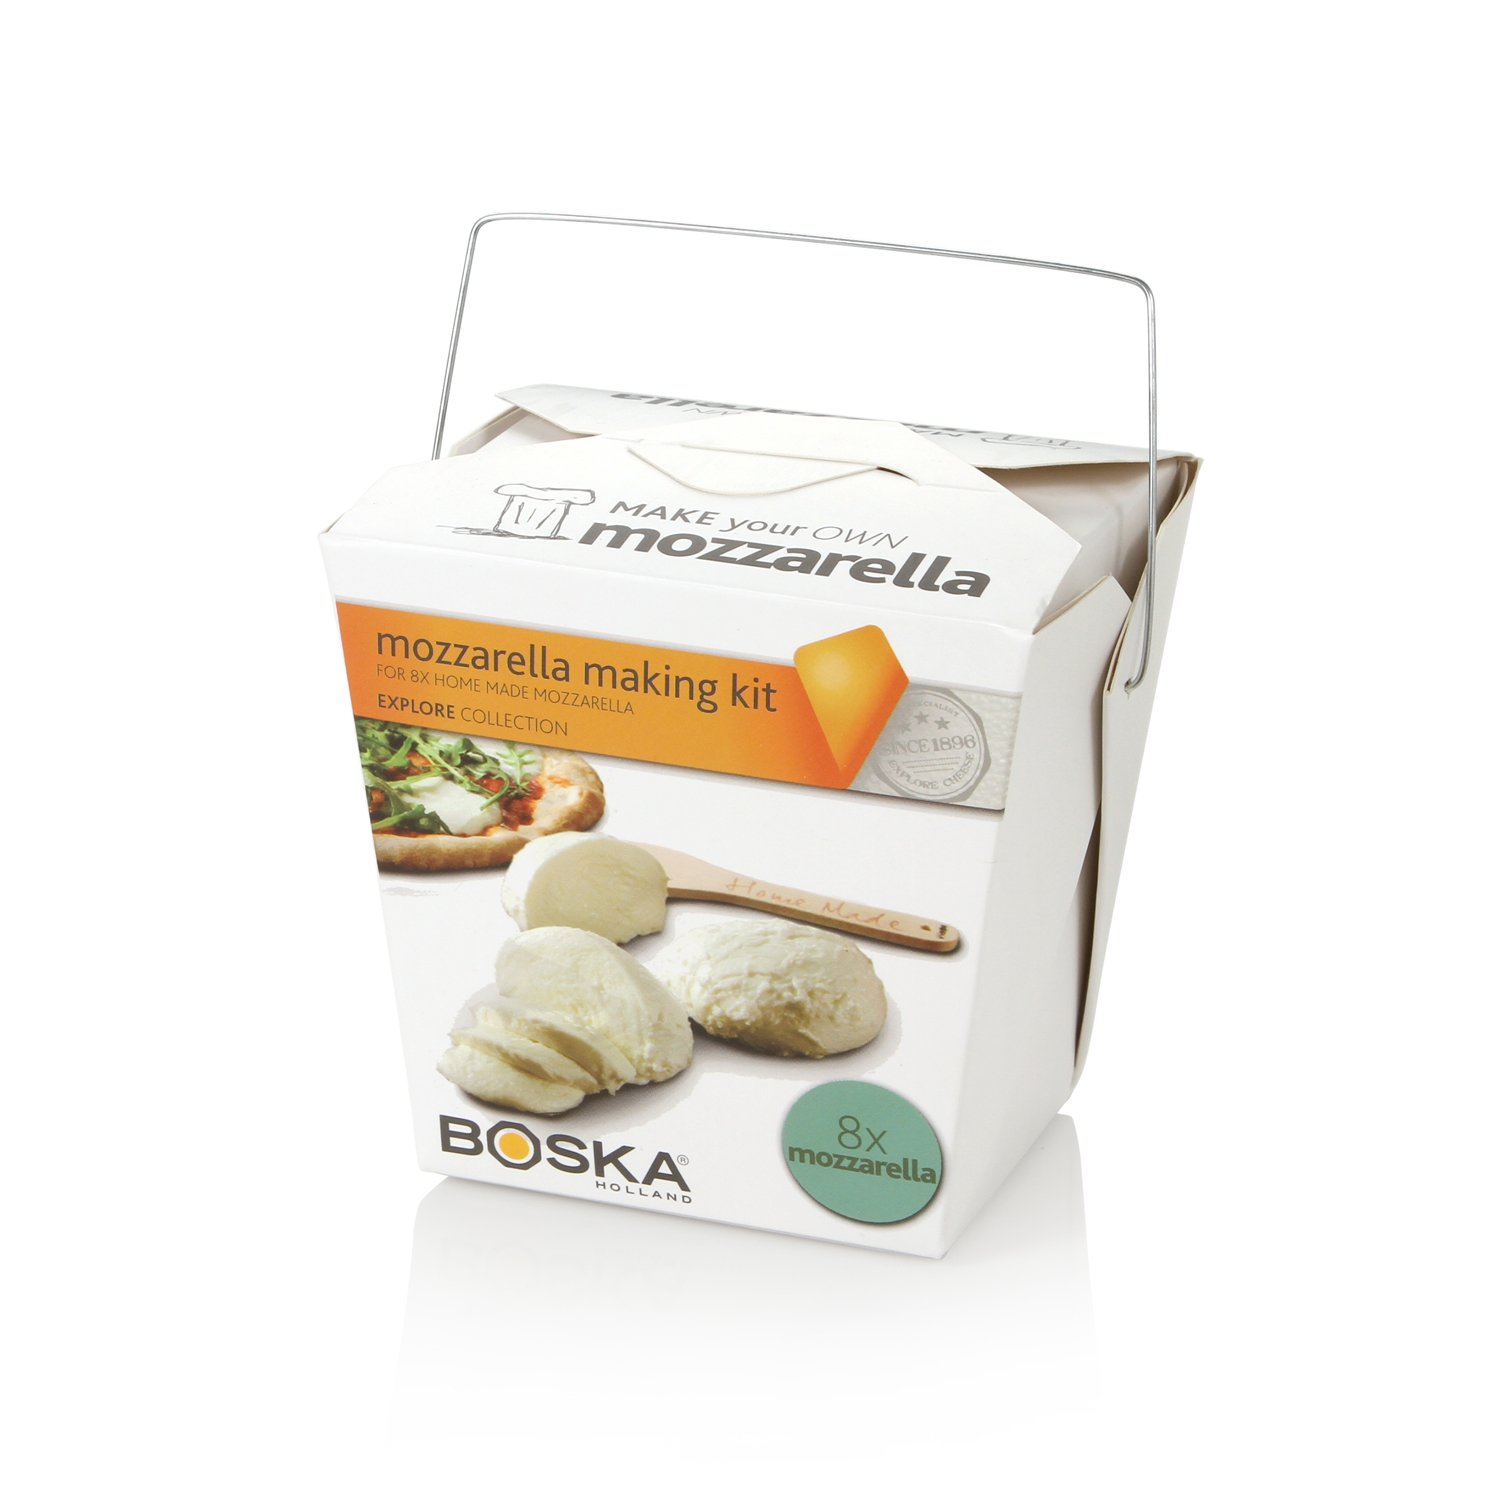 Boska Holland Mozzarella Cheese Making Kit, Homemade Set, Makes up to 8 Batches, Explore Collection